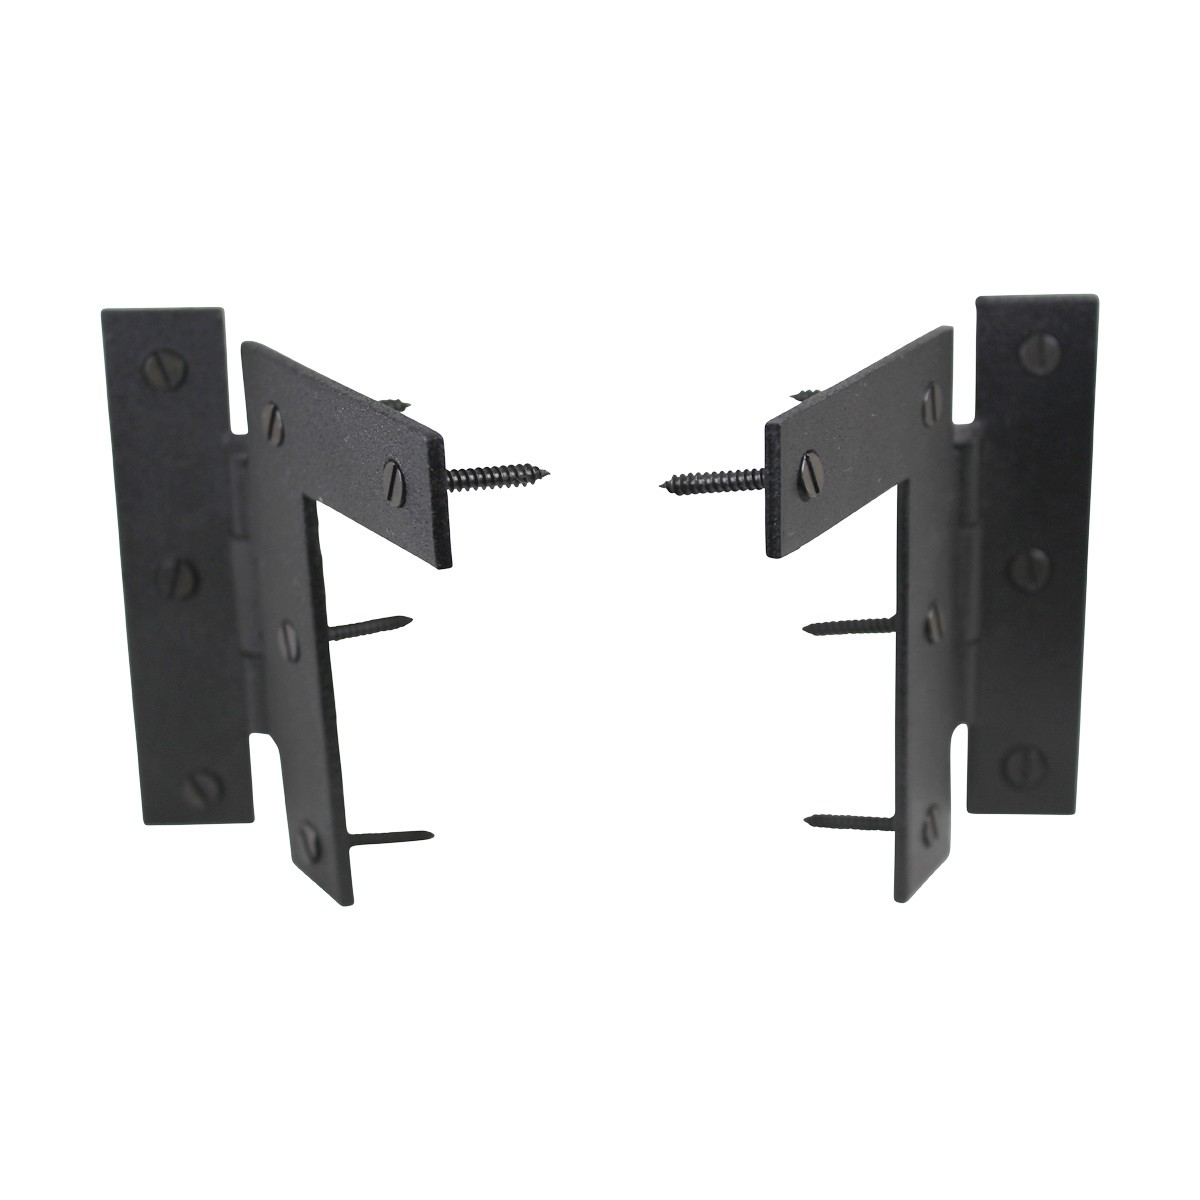 Pair Left and Right HL Wrought Iron Cabinet Hinge 3.5 H, 38 Offset Pack of 4 Door Hinges Door Hinge Solid Brass Hinge